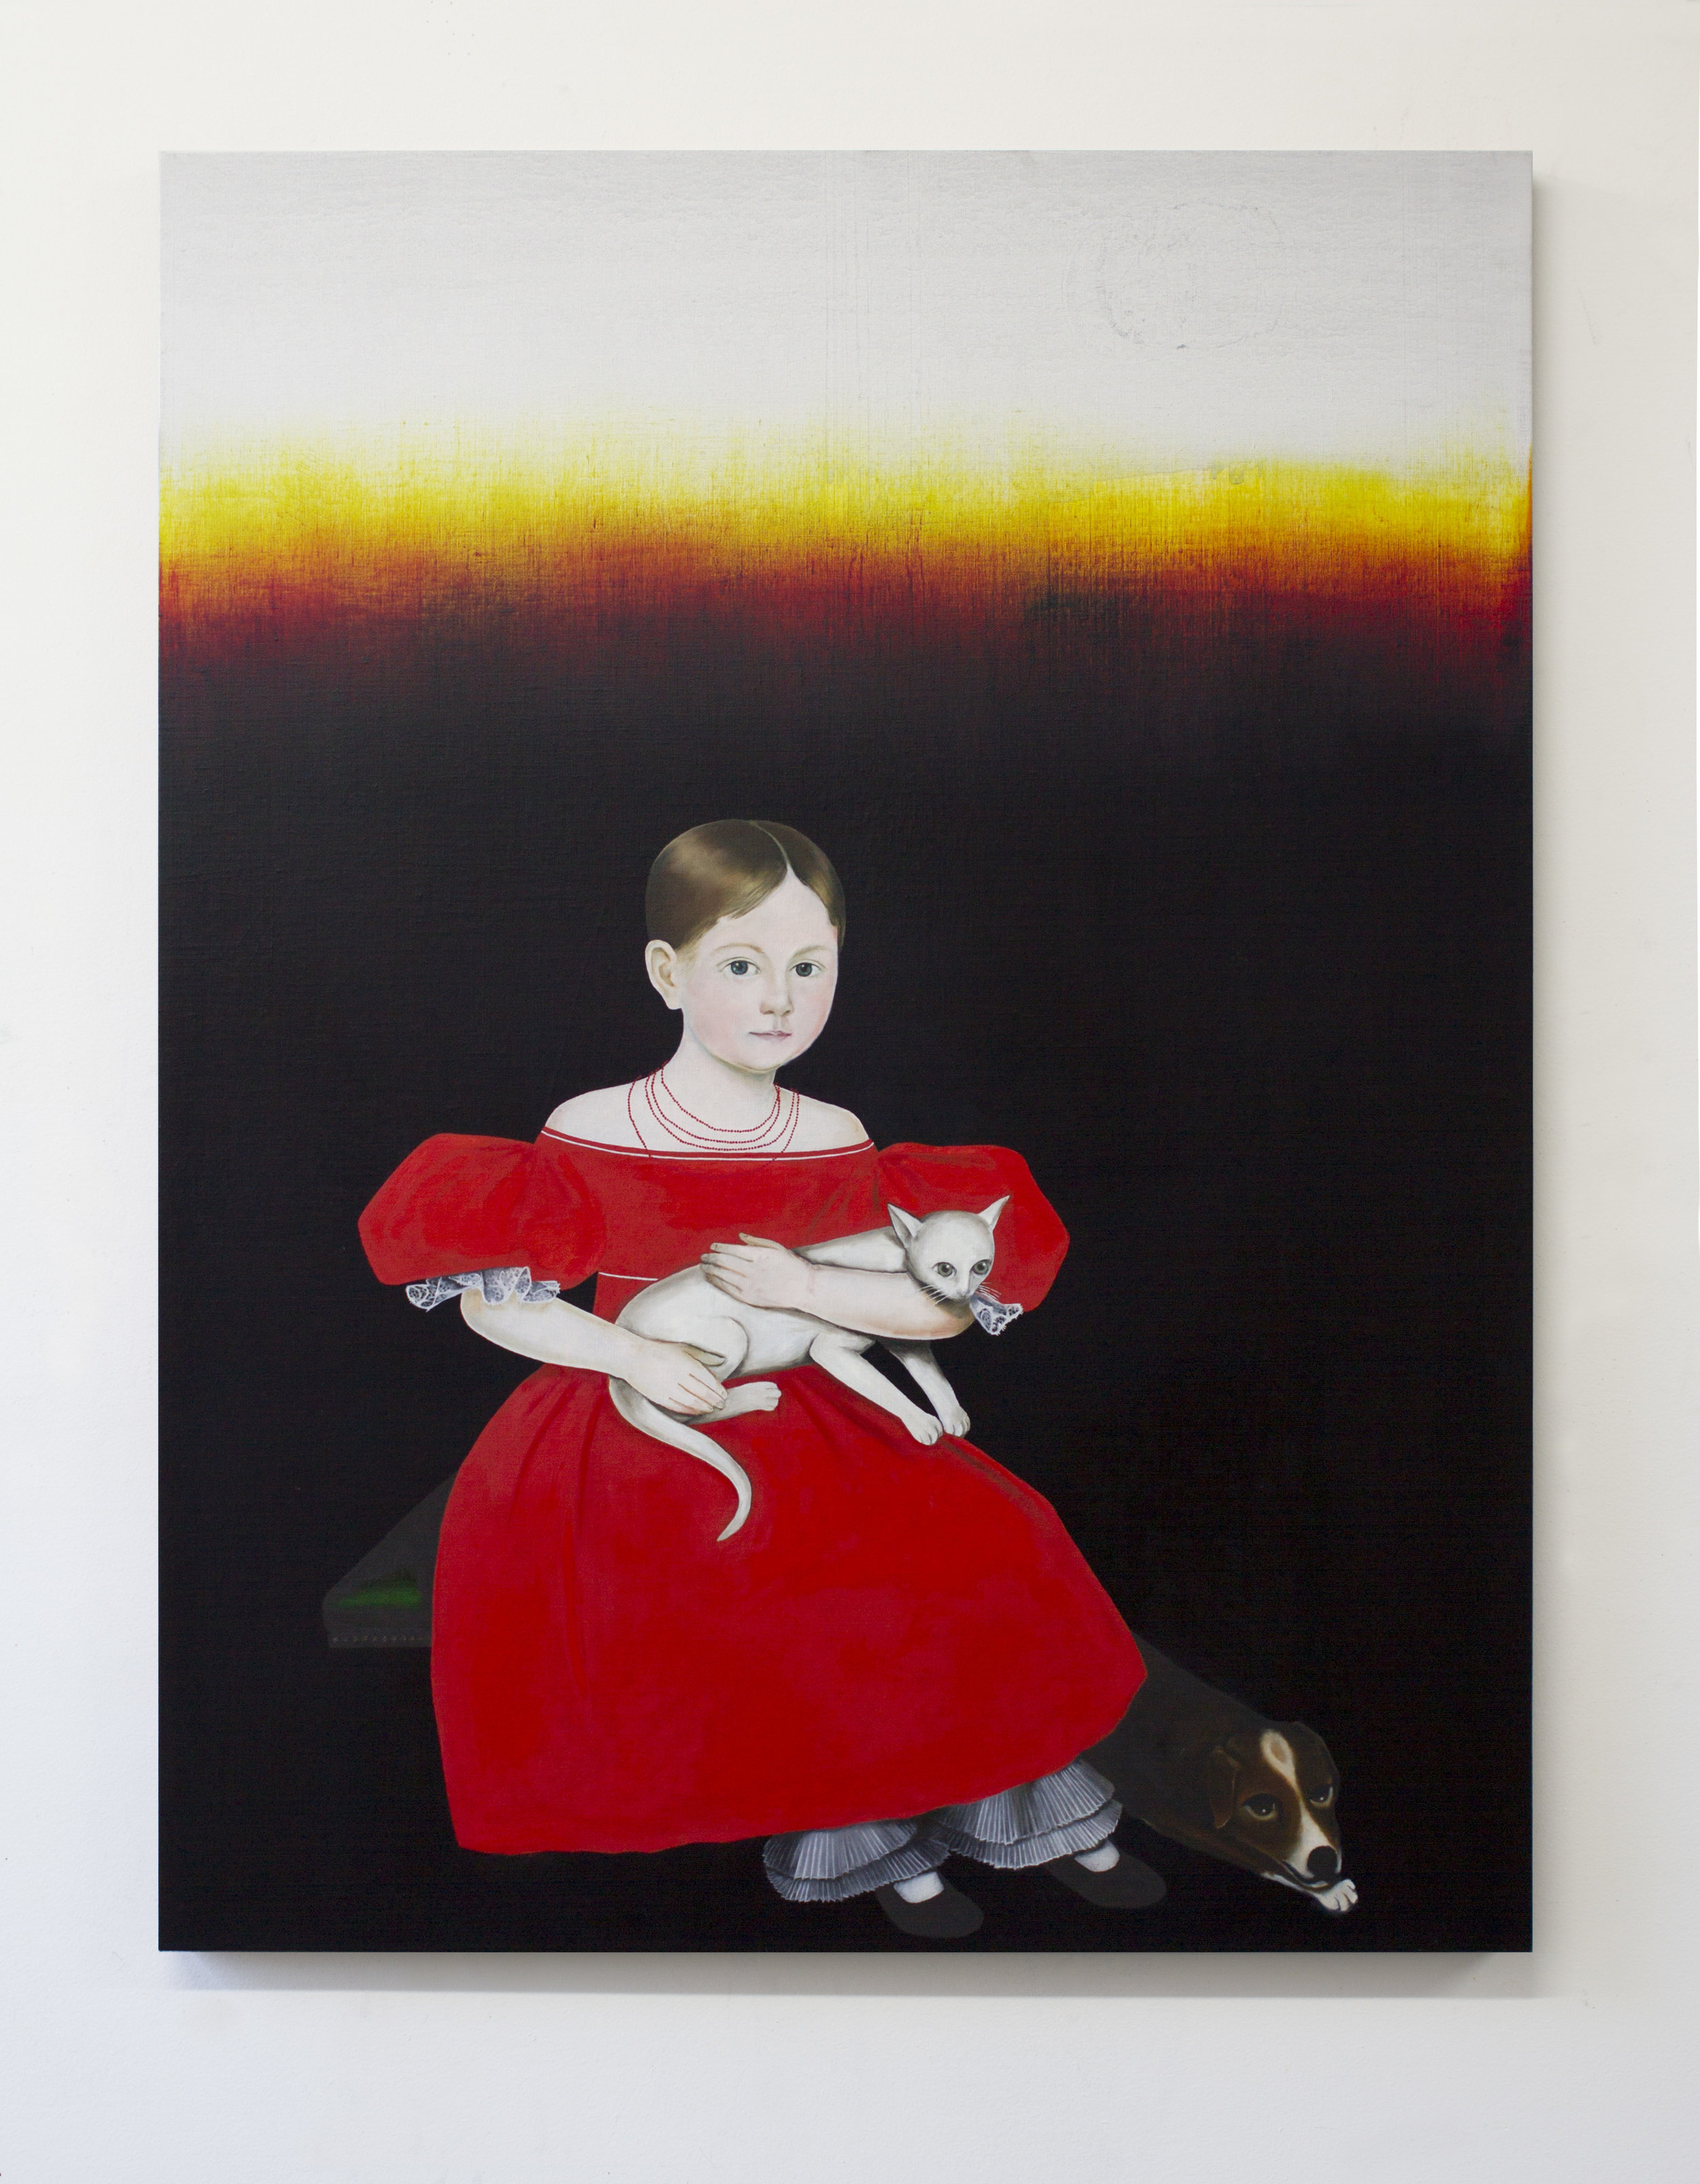 Study for a Girl in a Red Dress 2017 oil on linen 38 x 29 inches